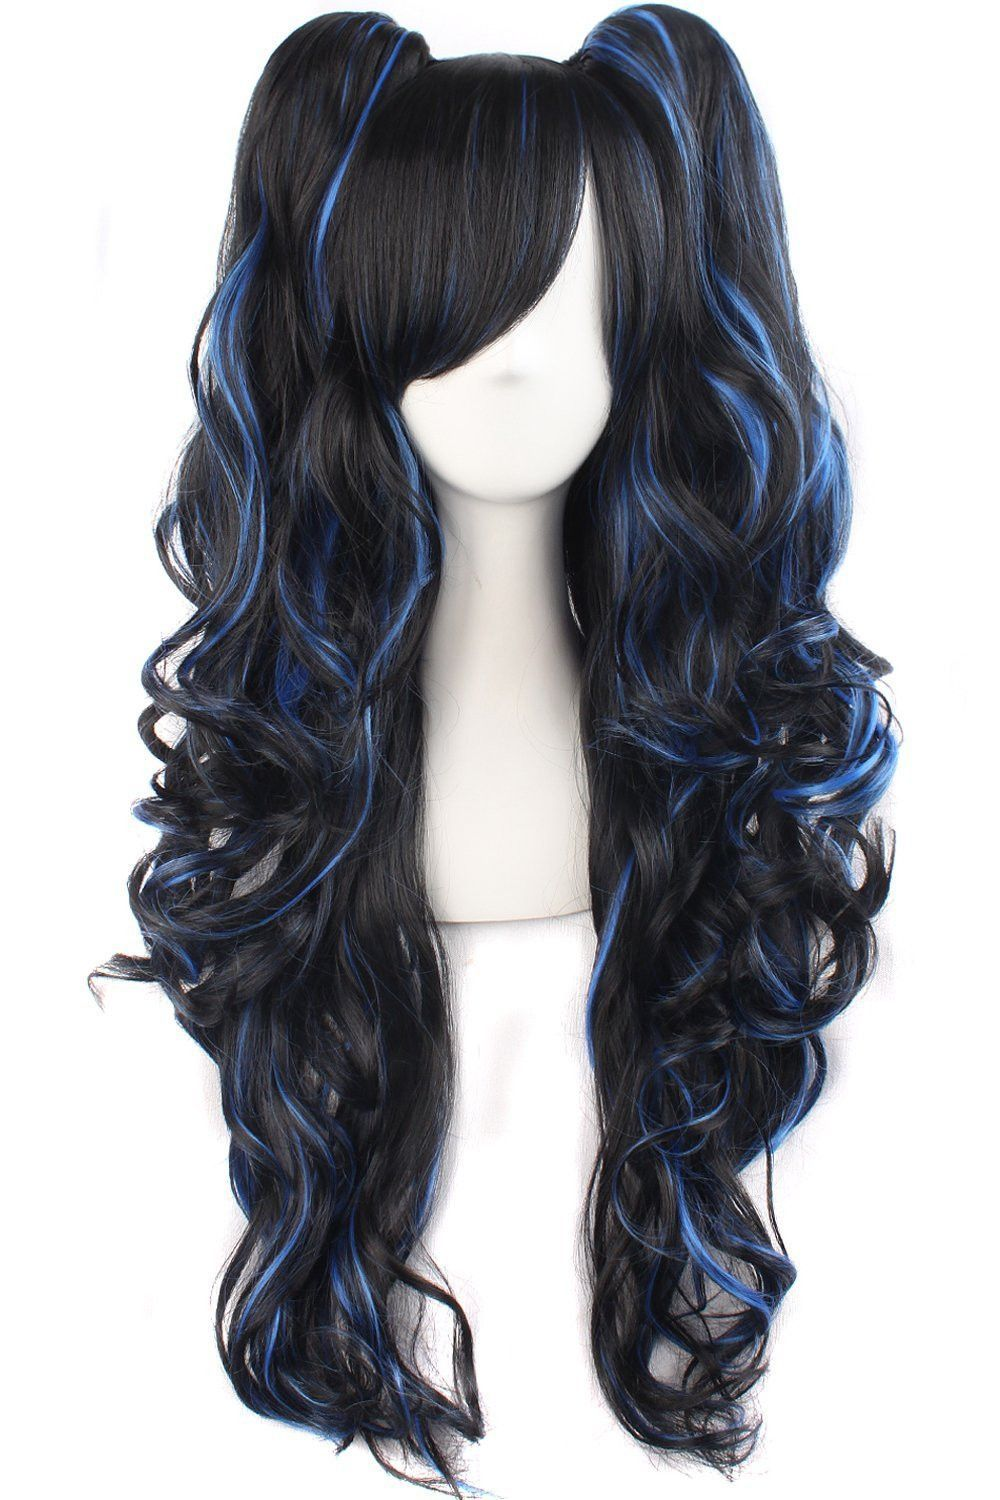 Long curly clip on ponytails anime cosplay wig Hair